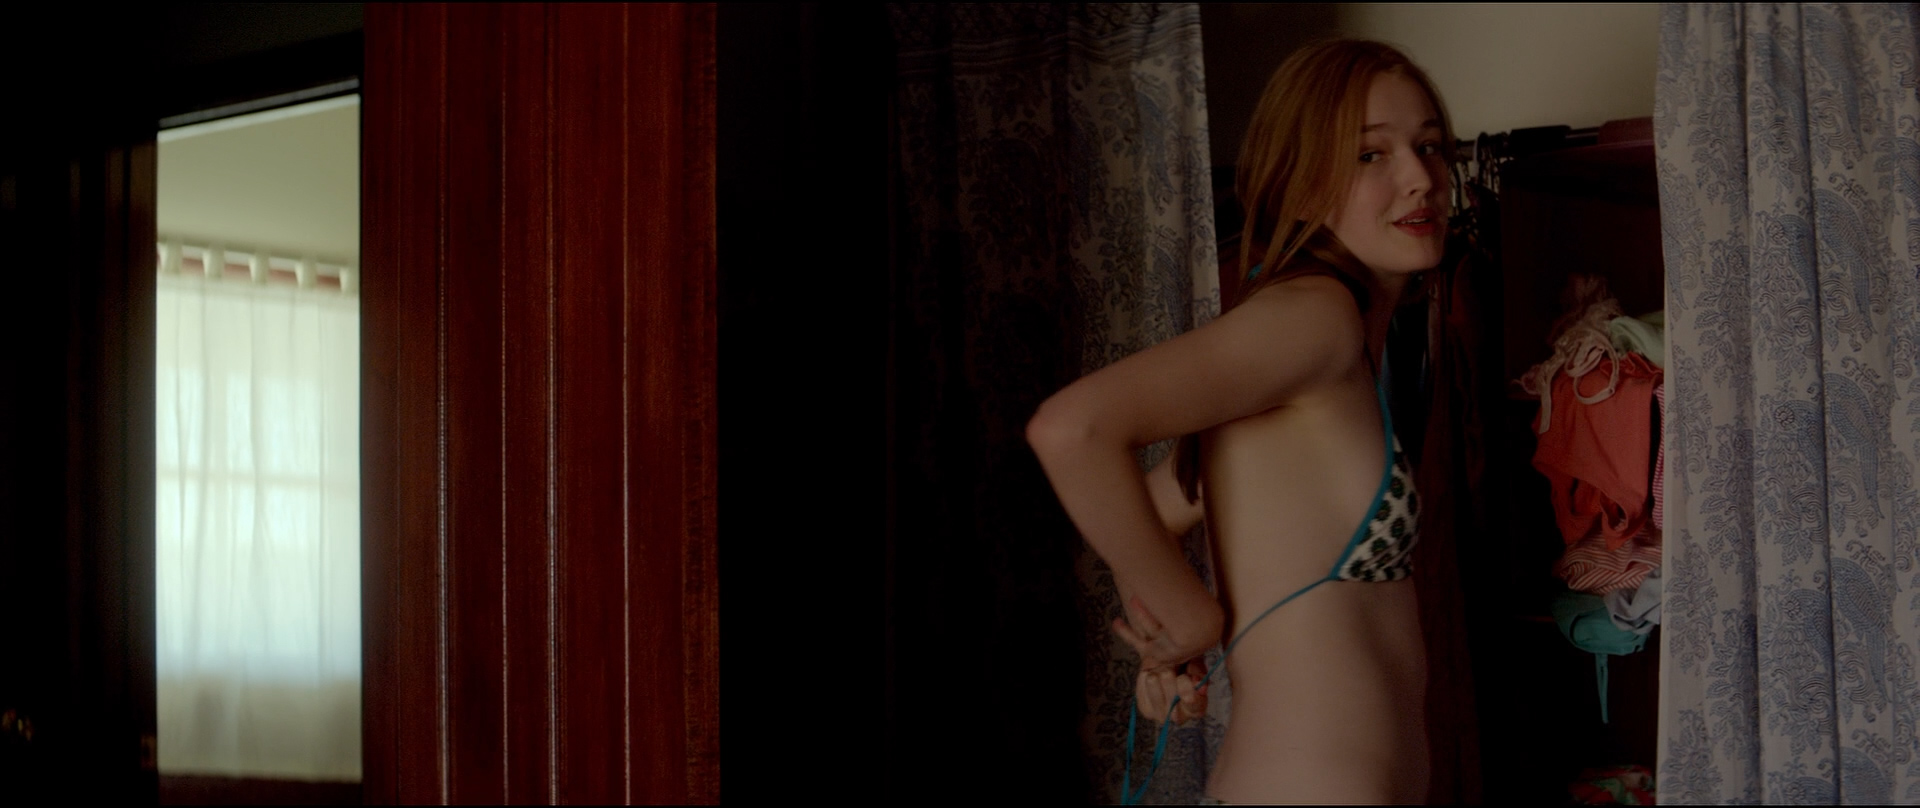 Nicole Kidman nude full frontal or bd and Madisson Brown hot - Strangerland (2015) hd1080p BluRay (10)